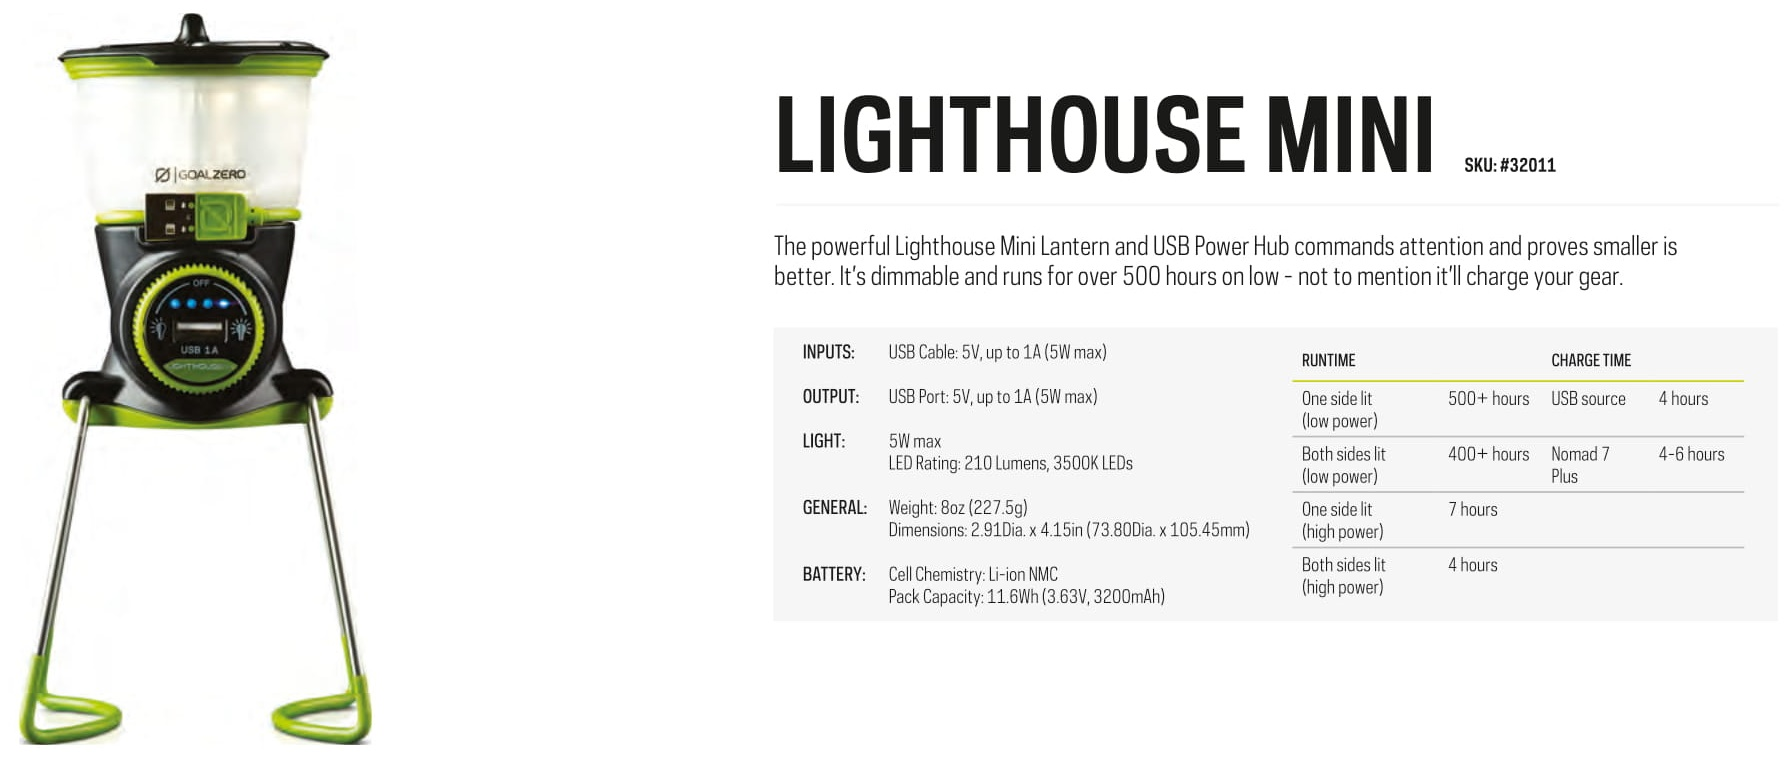 Goal Zero Lighthouse Rechargeable Mini Lantern, phone charger, outdoor energy storage, power supply